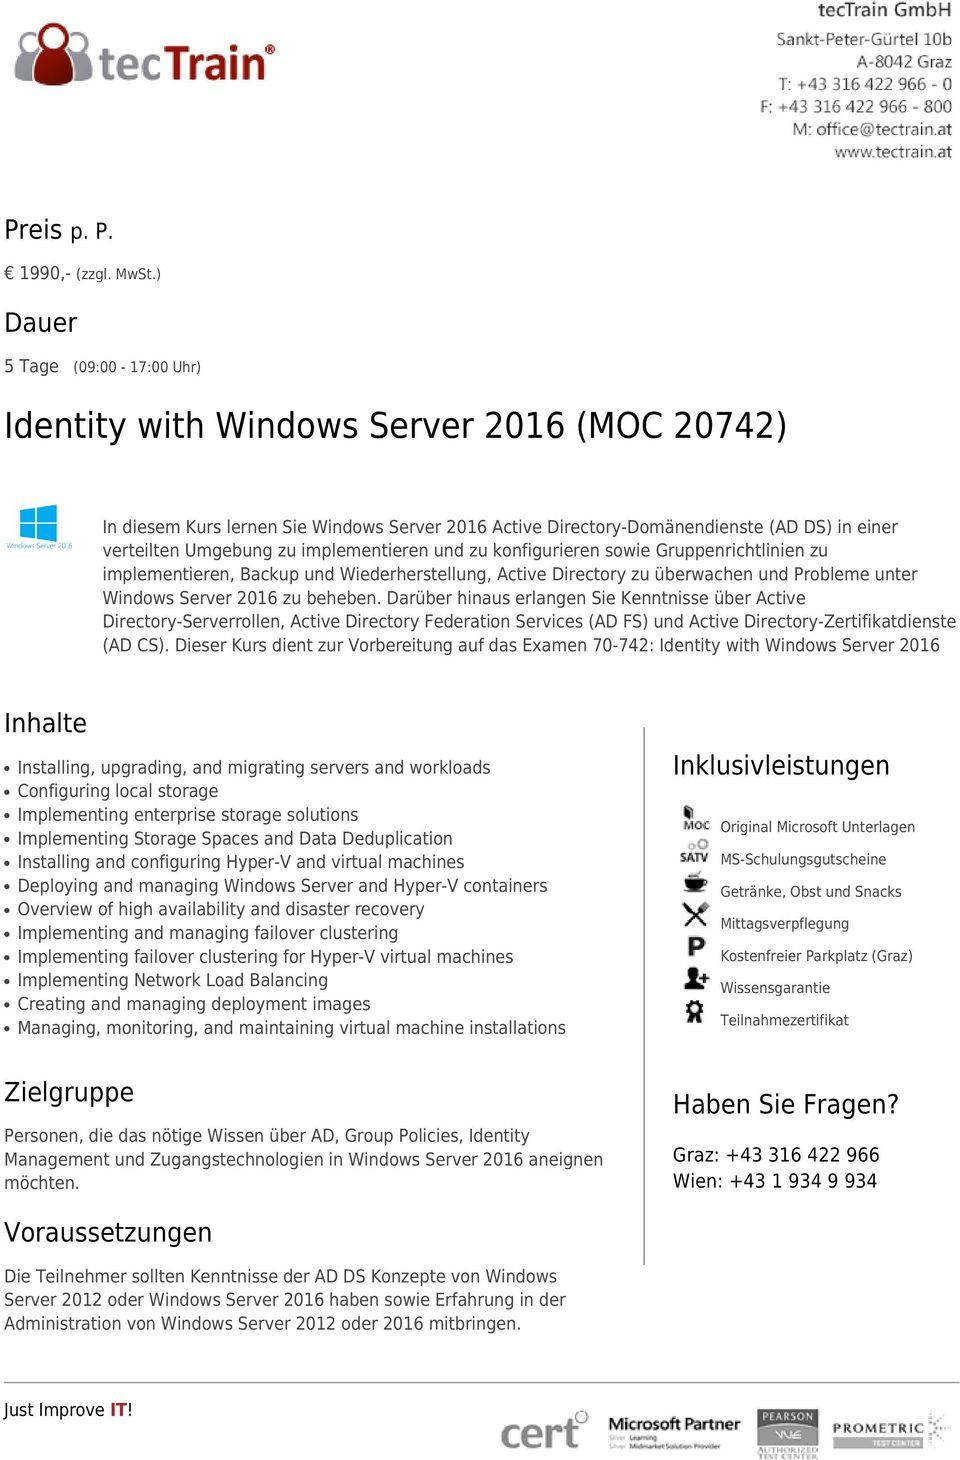 Installation, Storage, and Compute with Windows Server 2016 (MOC ...